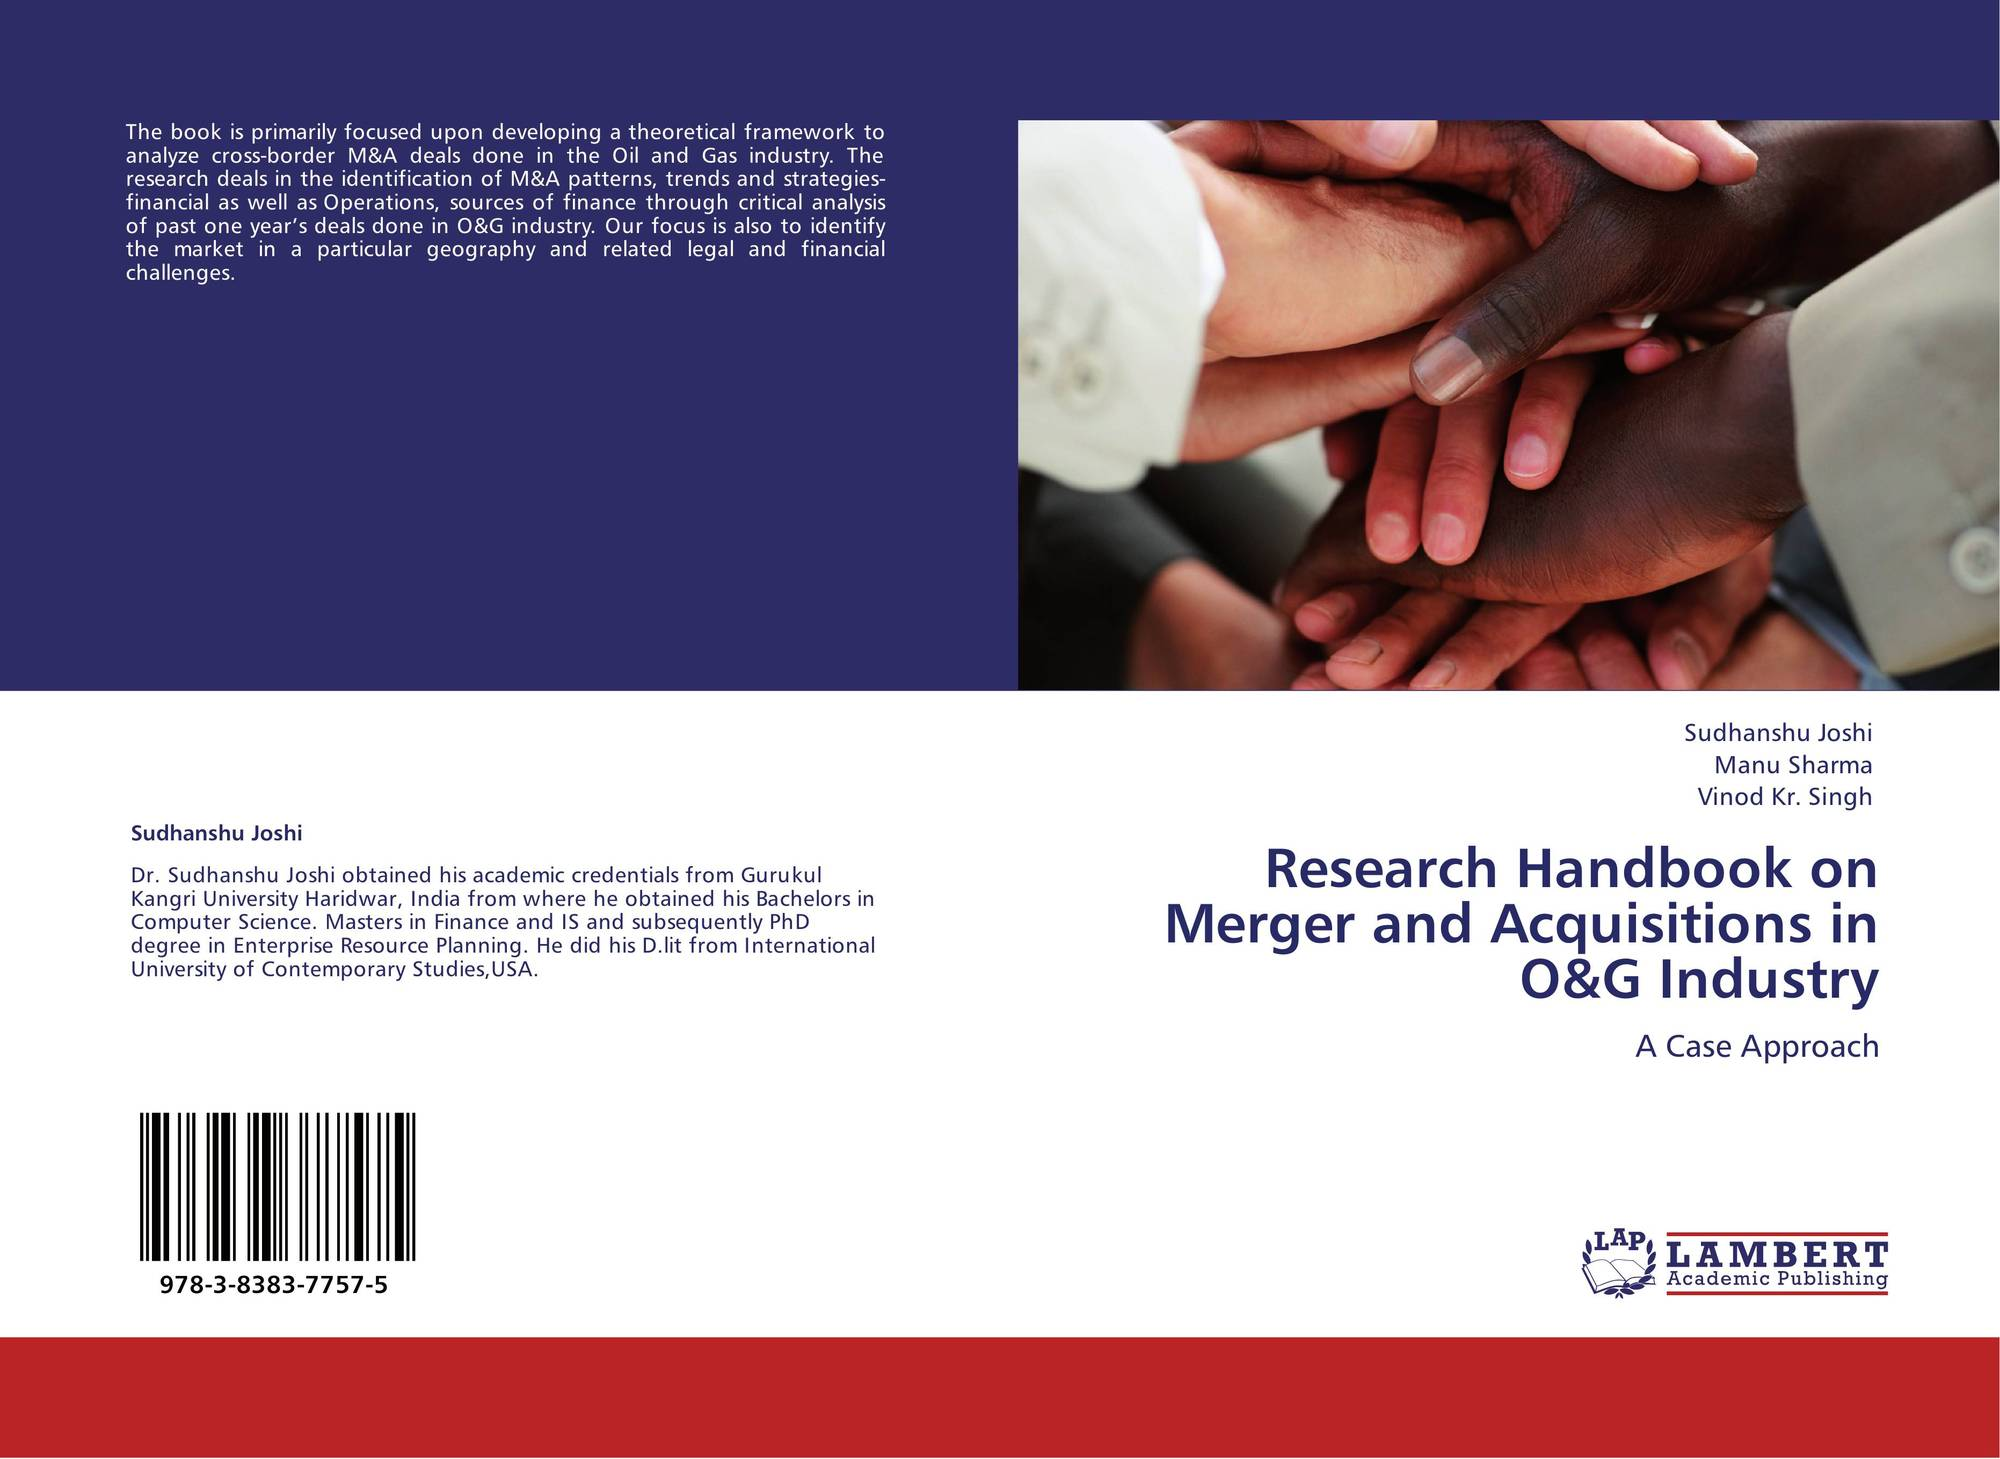 merger and acquisition-research papers Mergers and acquisitions (m&a) are transactions in which the ownership of companies, other business organizations, or their operating units are transferred or consolidated with other entities.